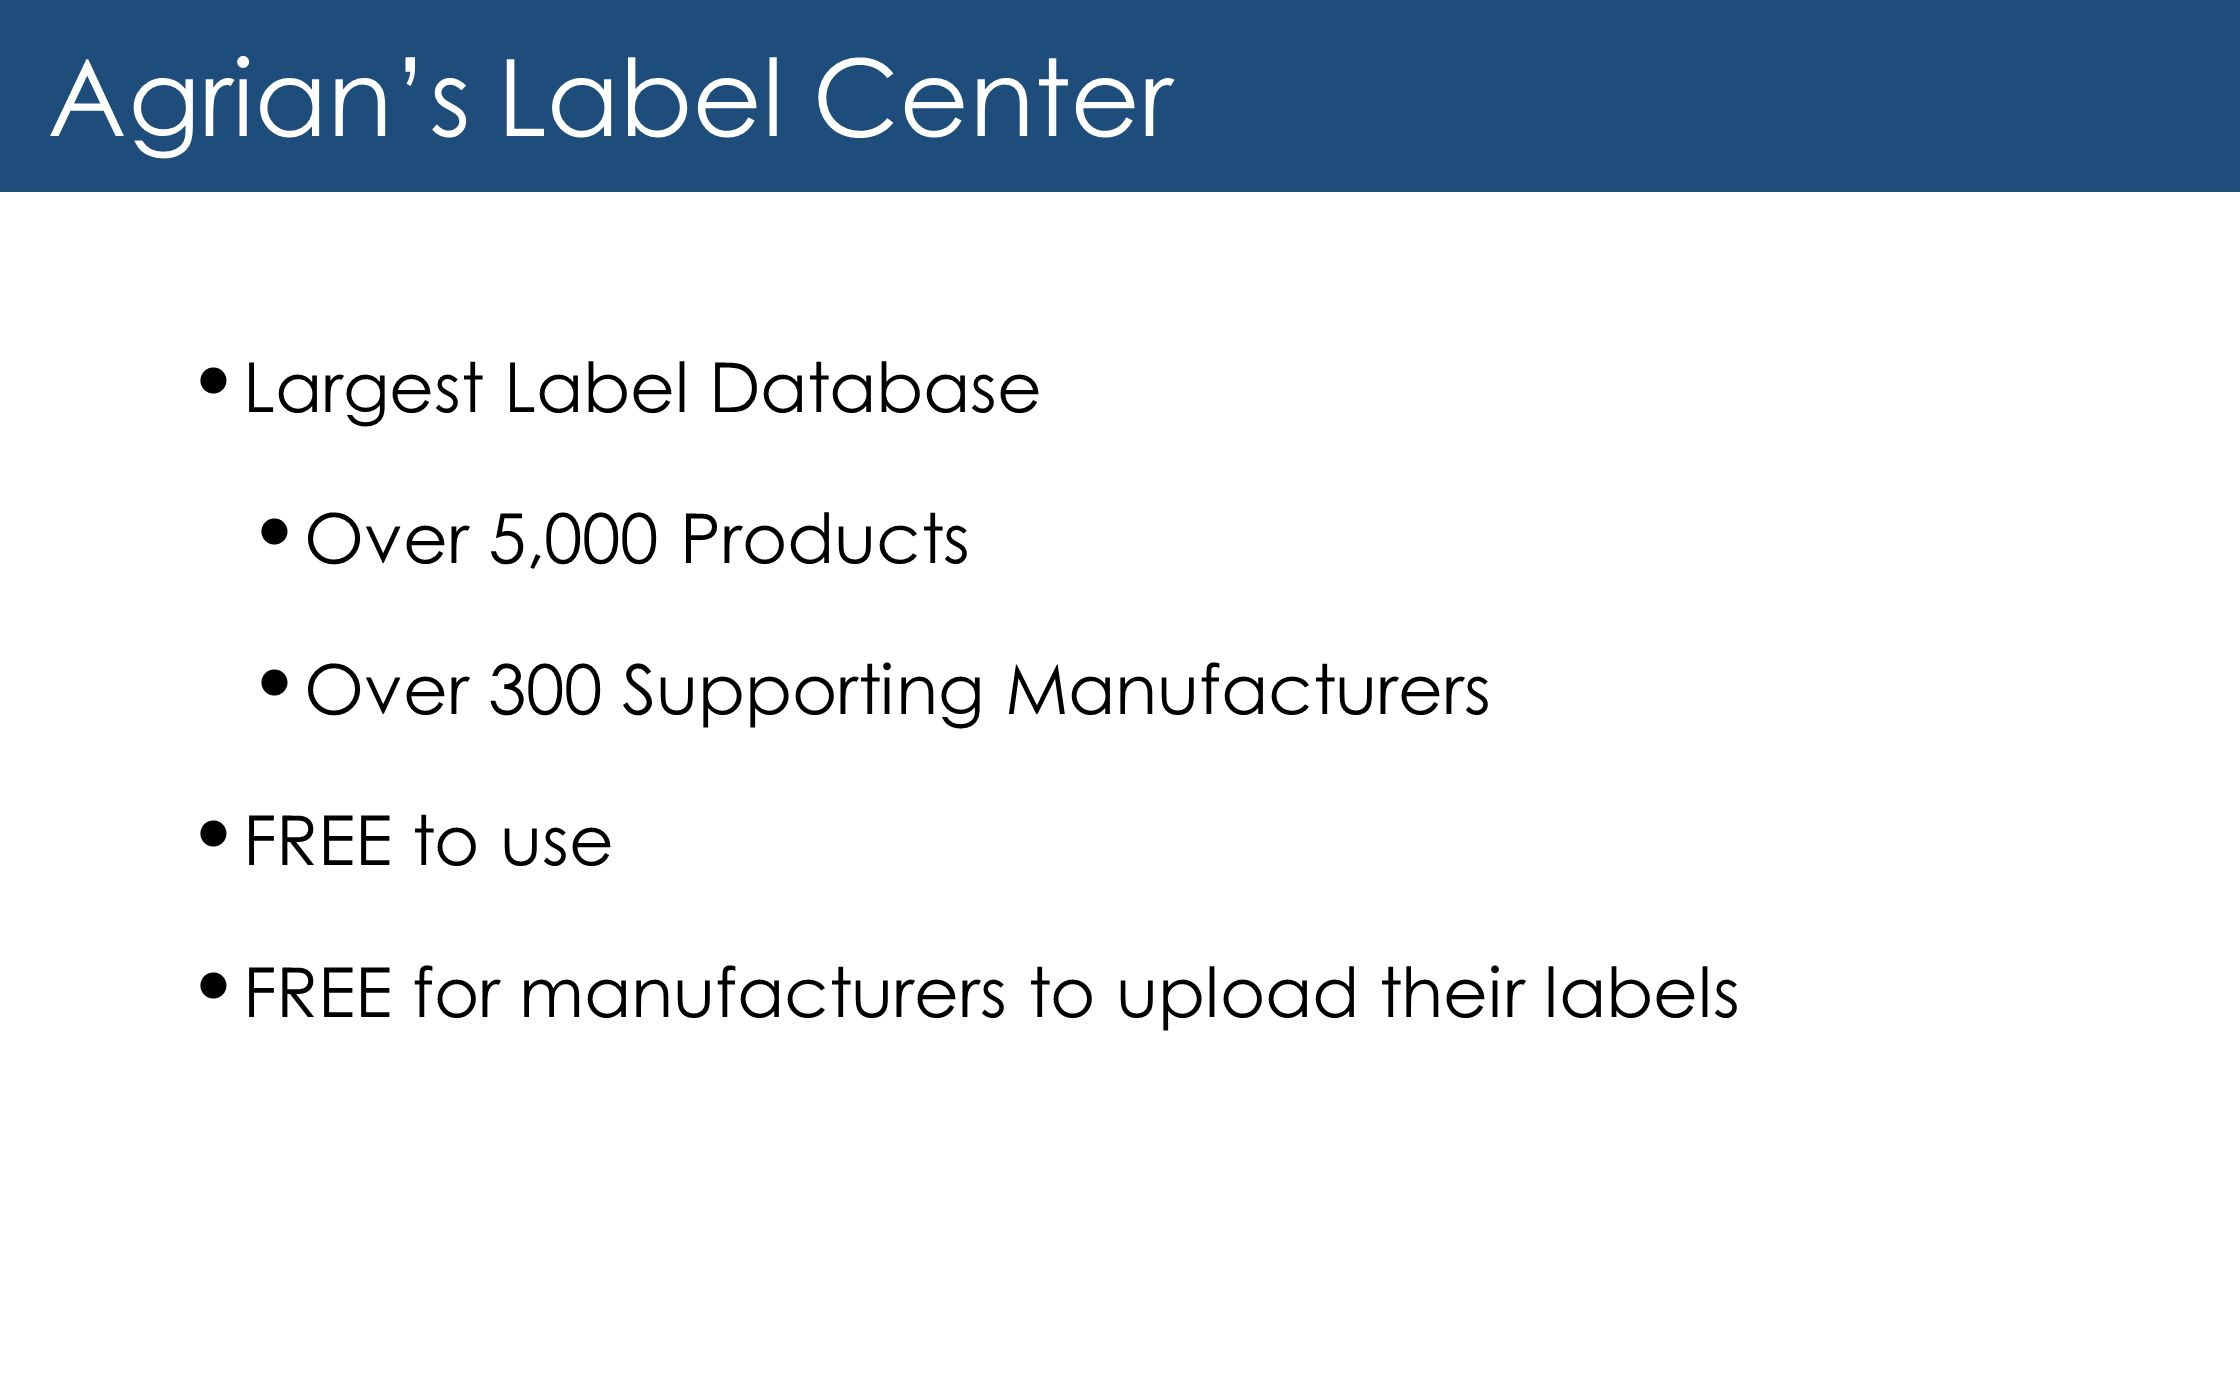 Agrian's Label Center Largest Label Database Over 5,000 Products Over 300 Supporting Manufacturers FREE to use FREE for manufacturers to upload their labels